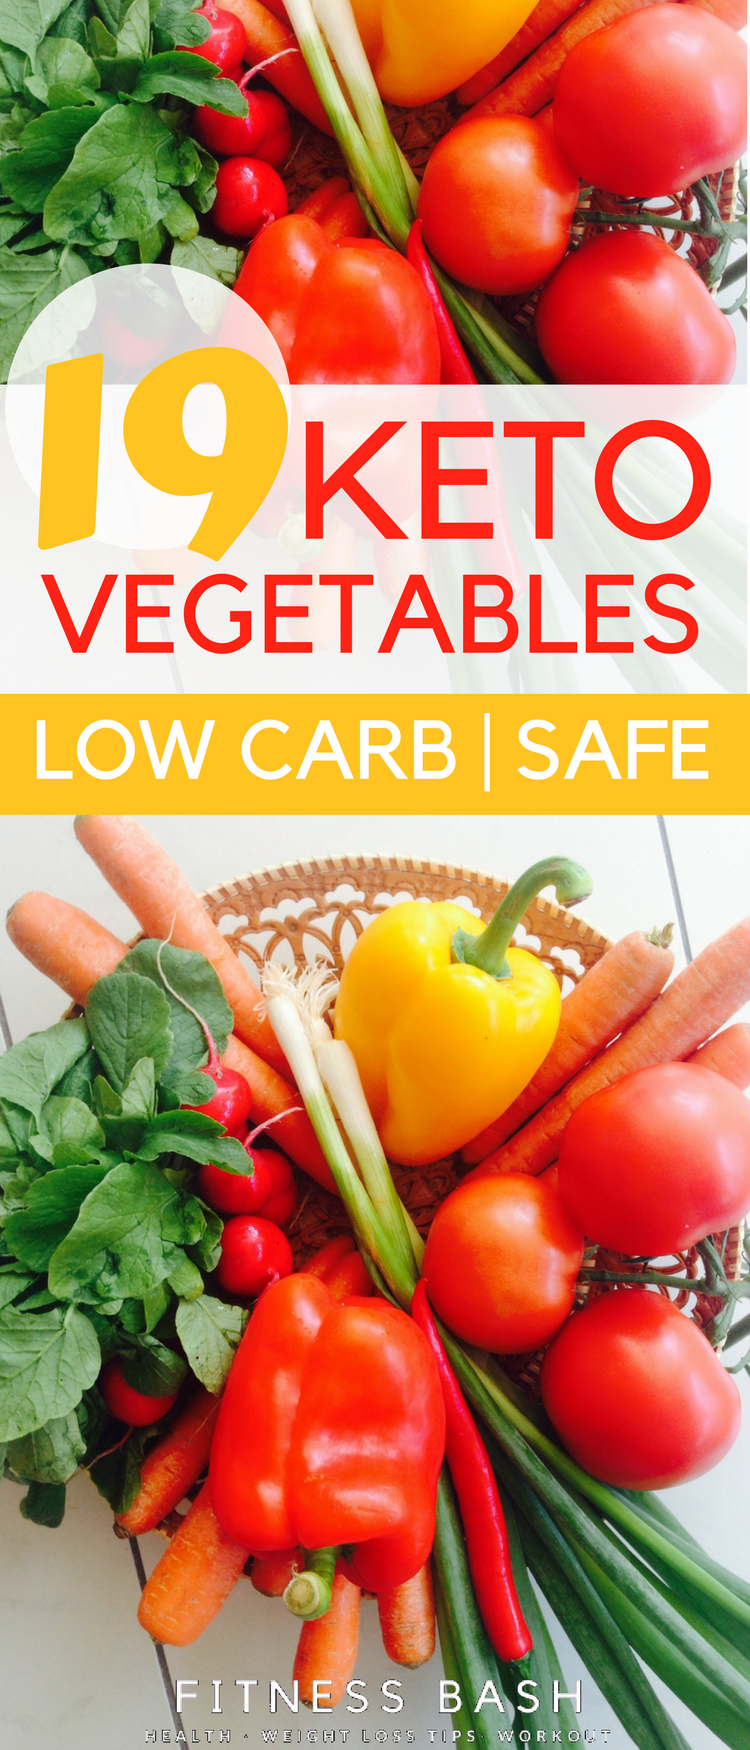 Keto Vegetables List 19 Low Carb Vegetables that you can